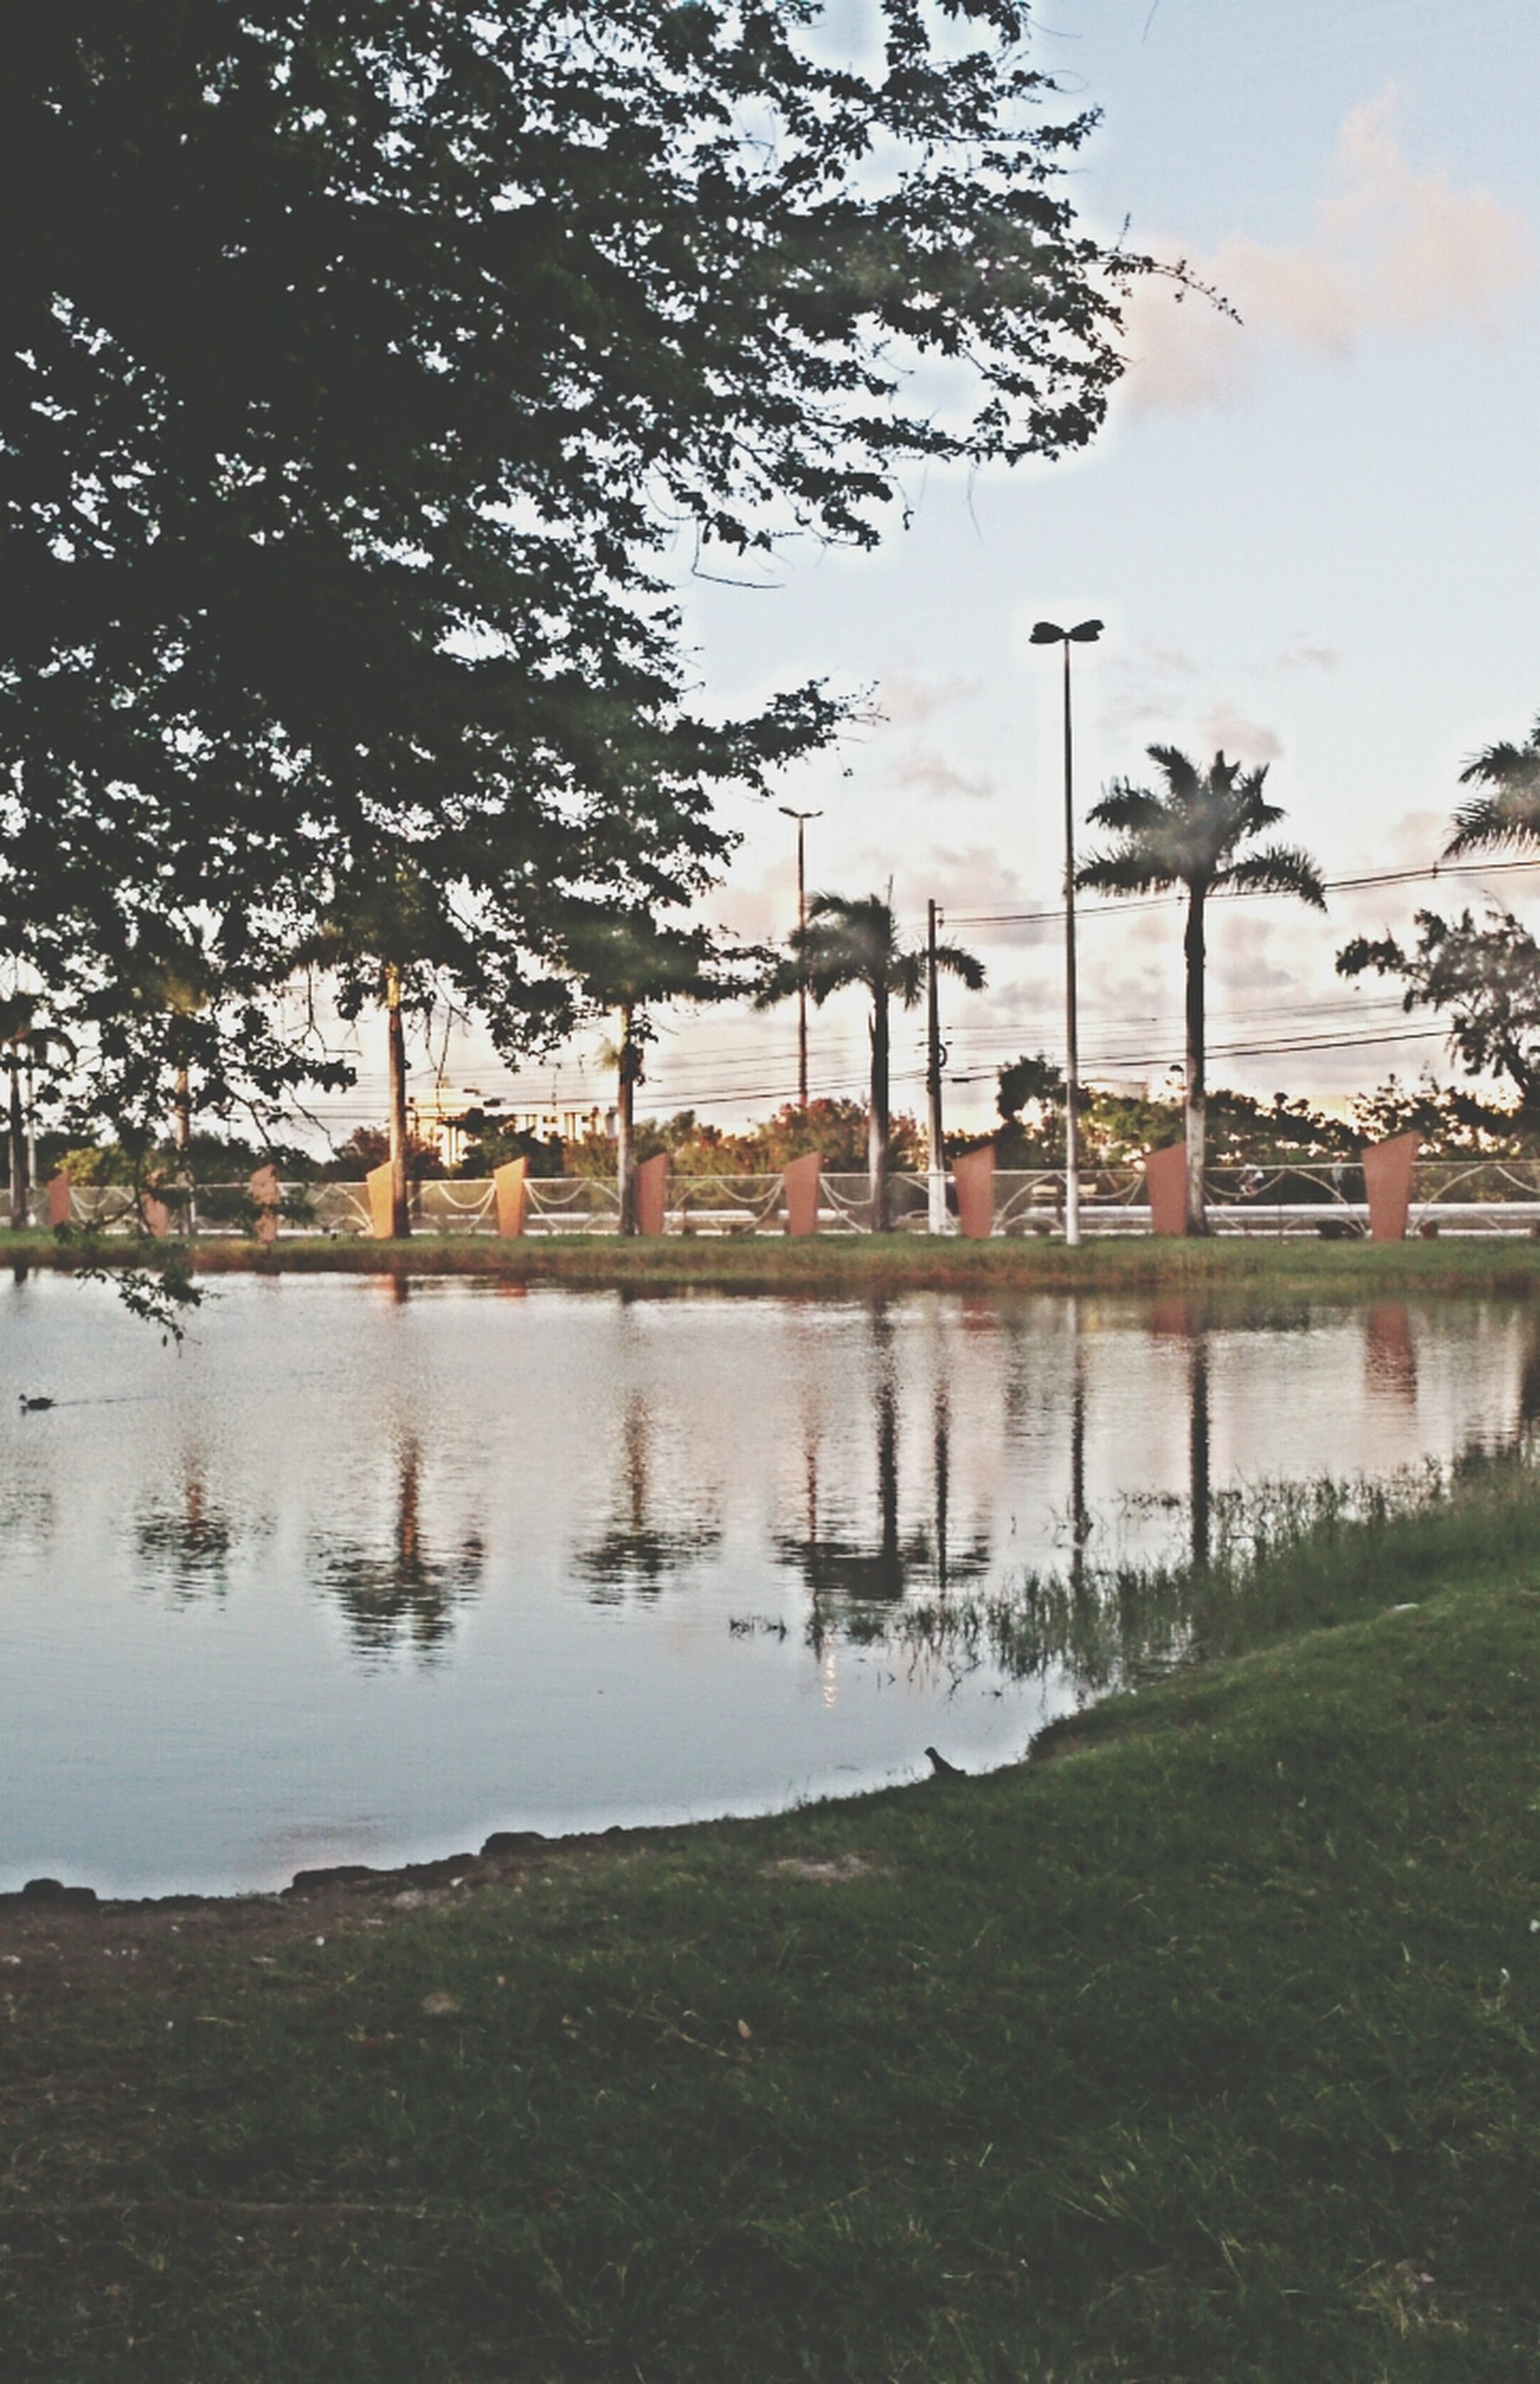 tree, water, sky, built structure, architecture, building exterior, lake, river, tranquility, reflection, nature, grass, branch, city, tranquil scene, growth, park - man made space, outdoors, scenics, beauty in nature